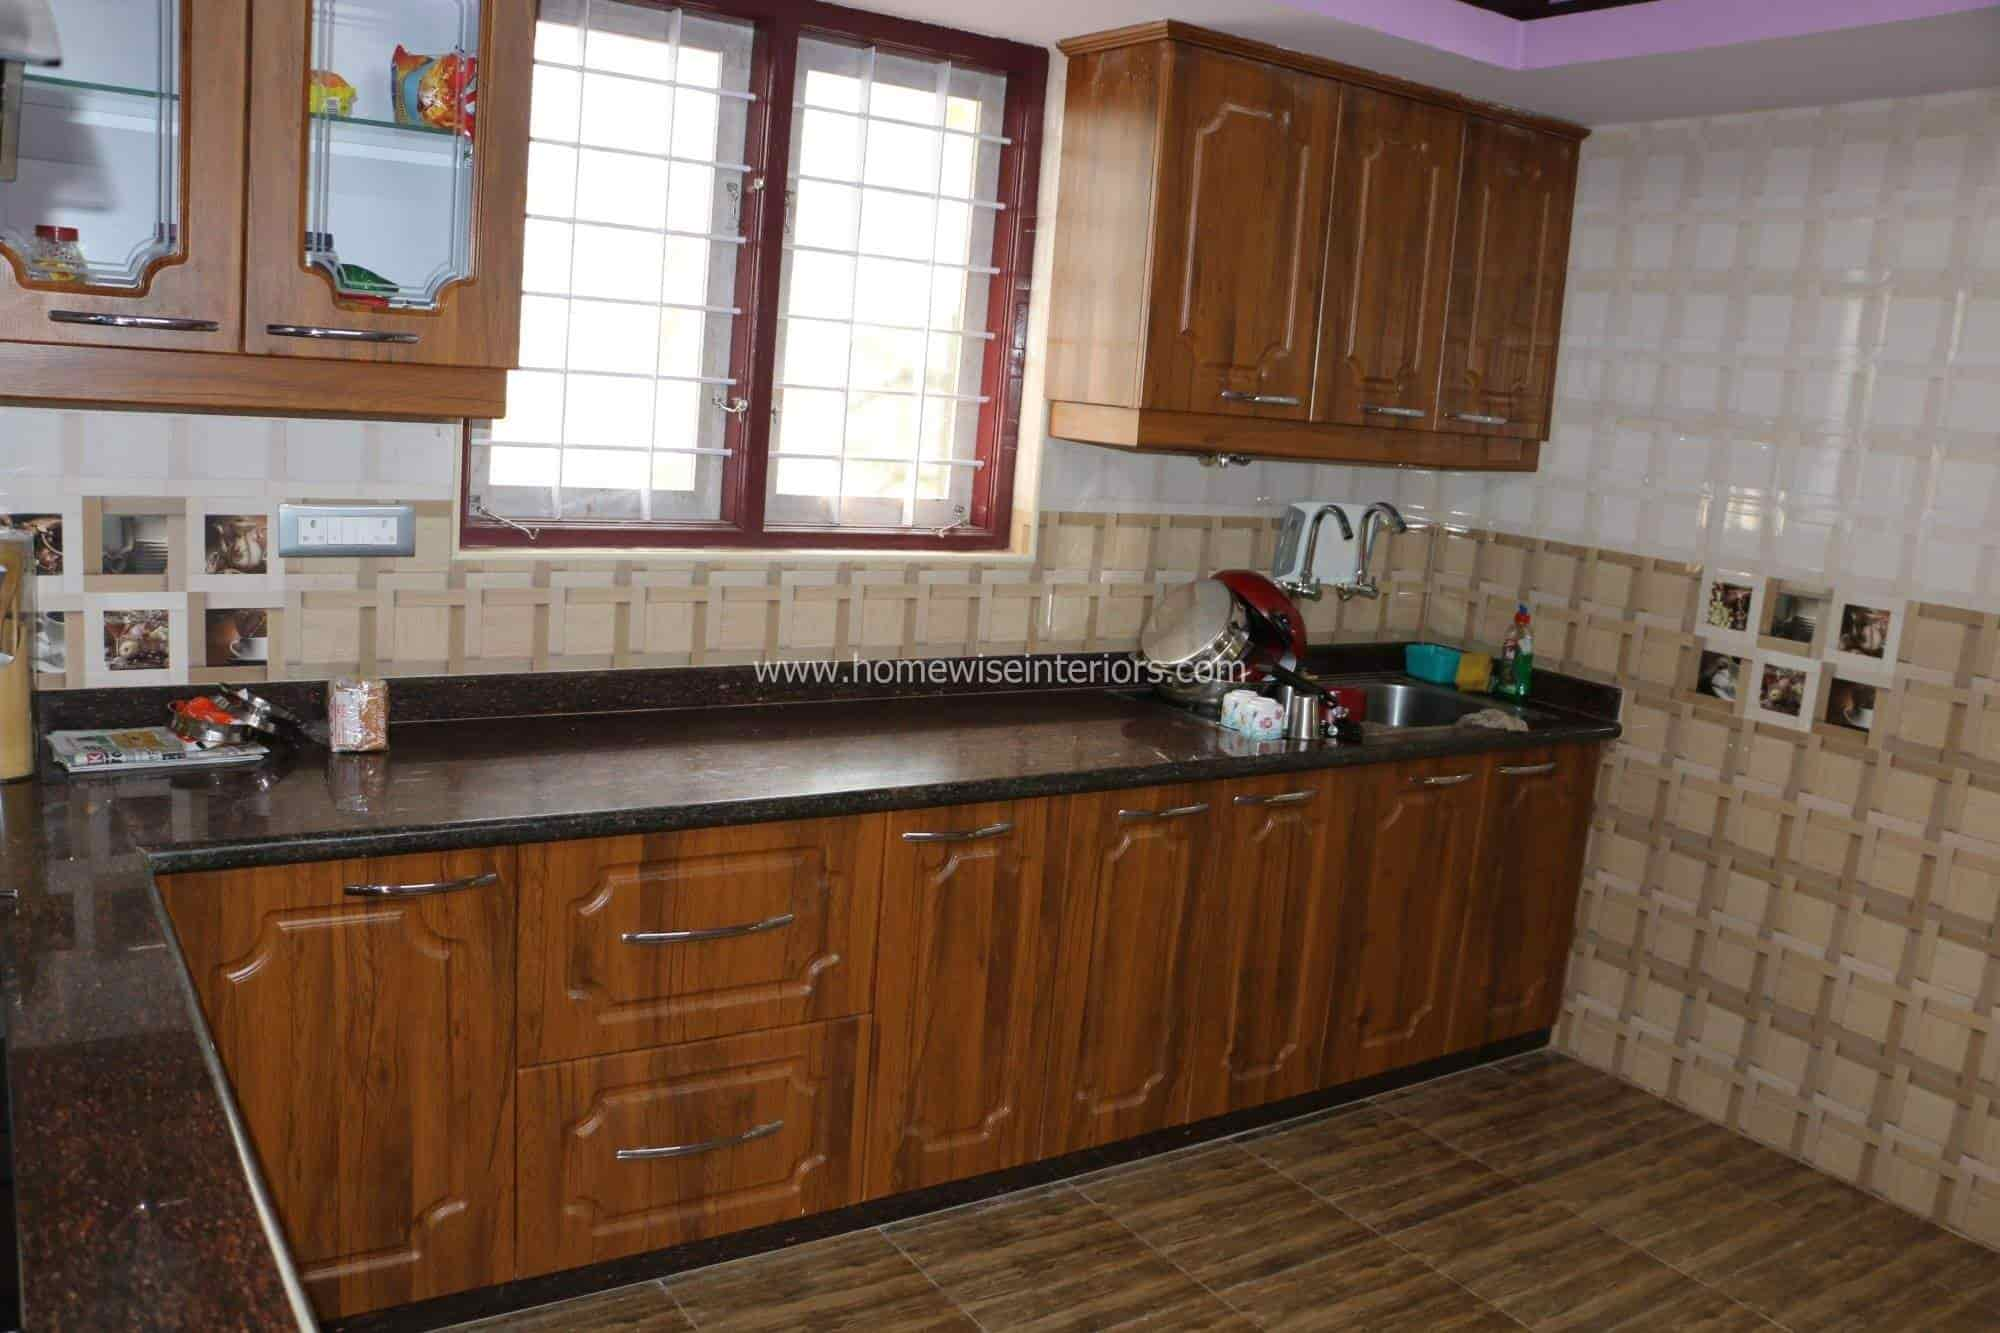 Home Wise Interiors Photos Alake Mangalore Pictures Images